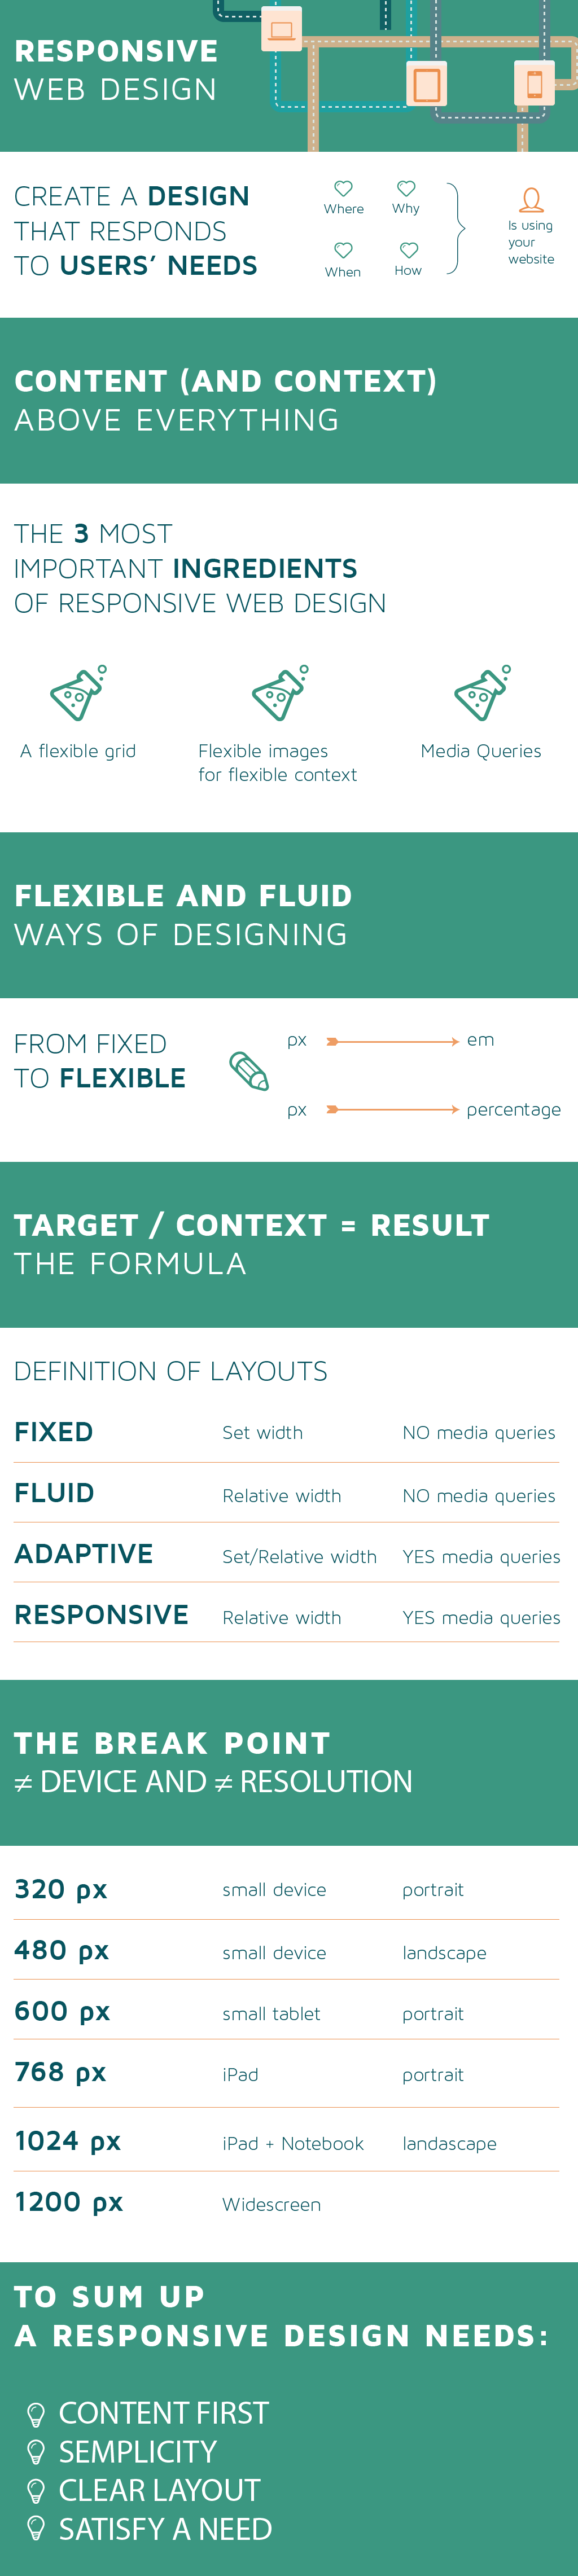 Responsive web design summary